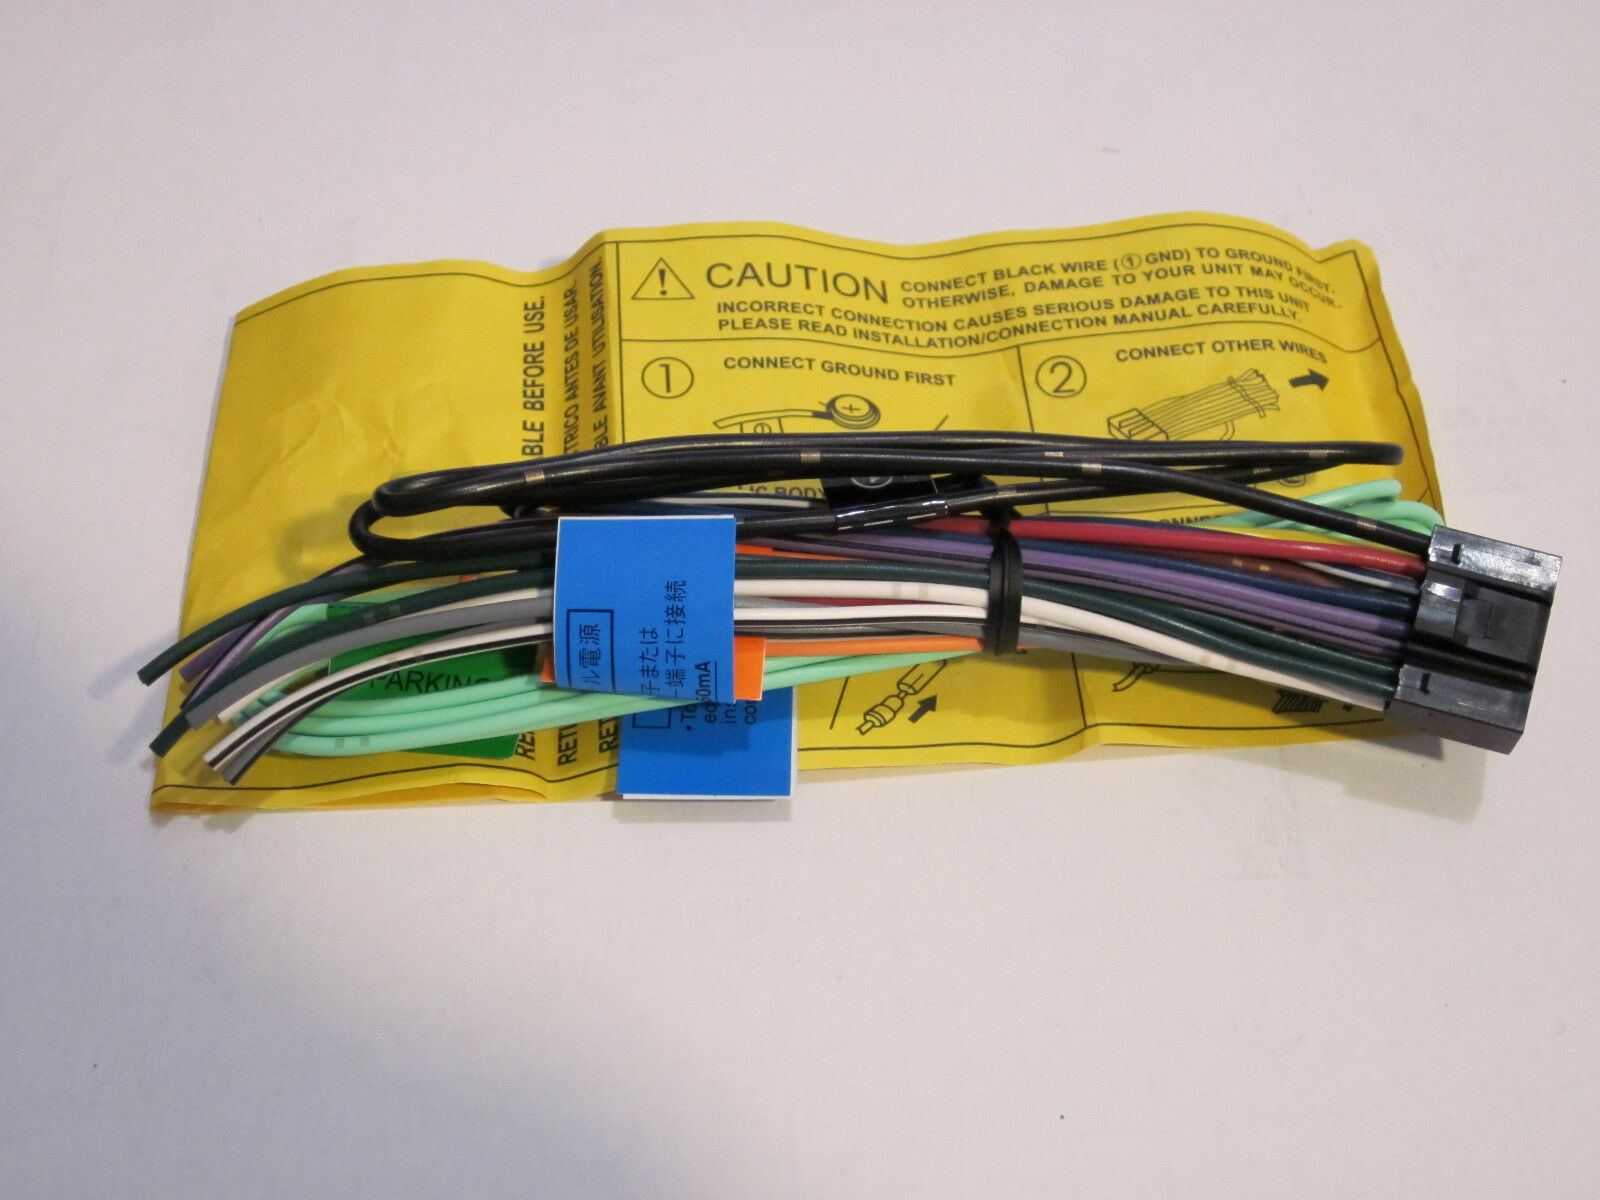 s l1600 original jvc kw avx810 wire harness oem a1 ebay jvc kw-nx7000 wire harness at aneh.co